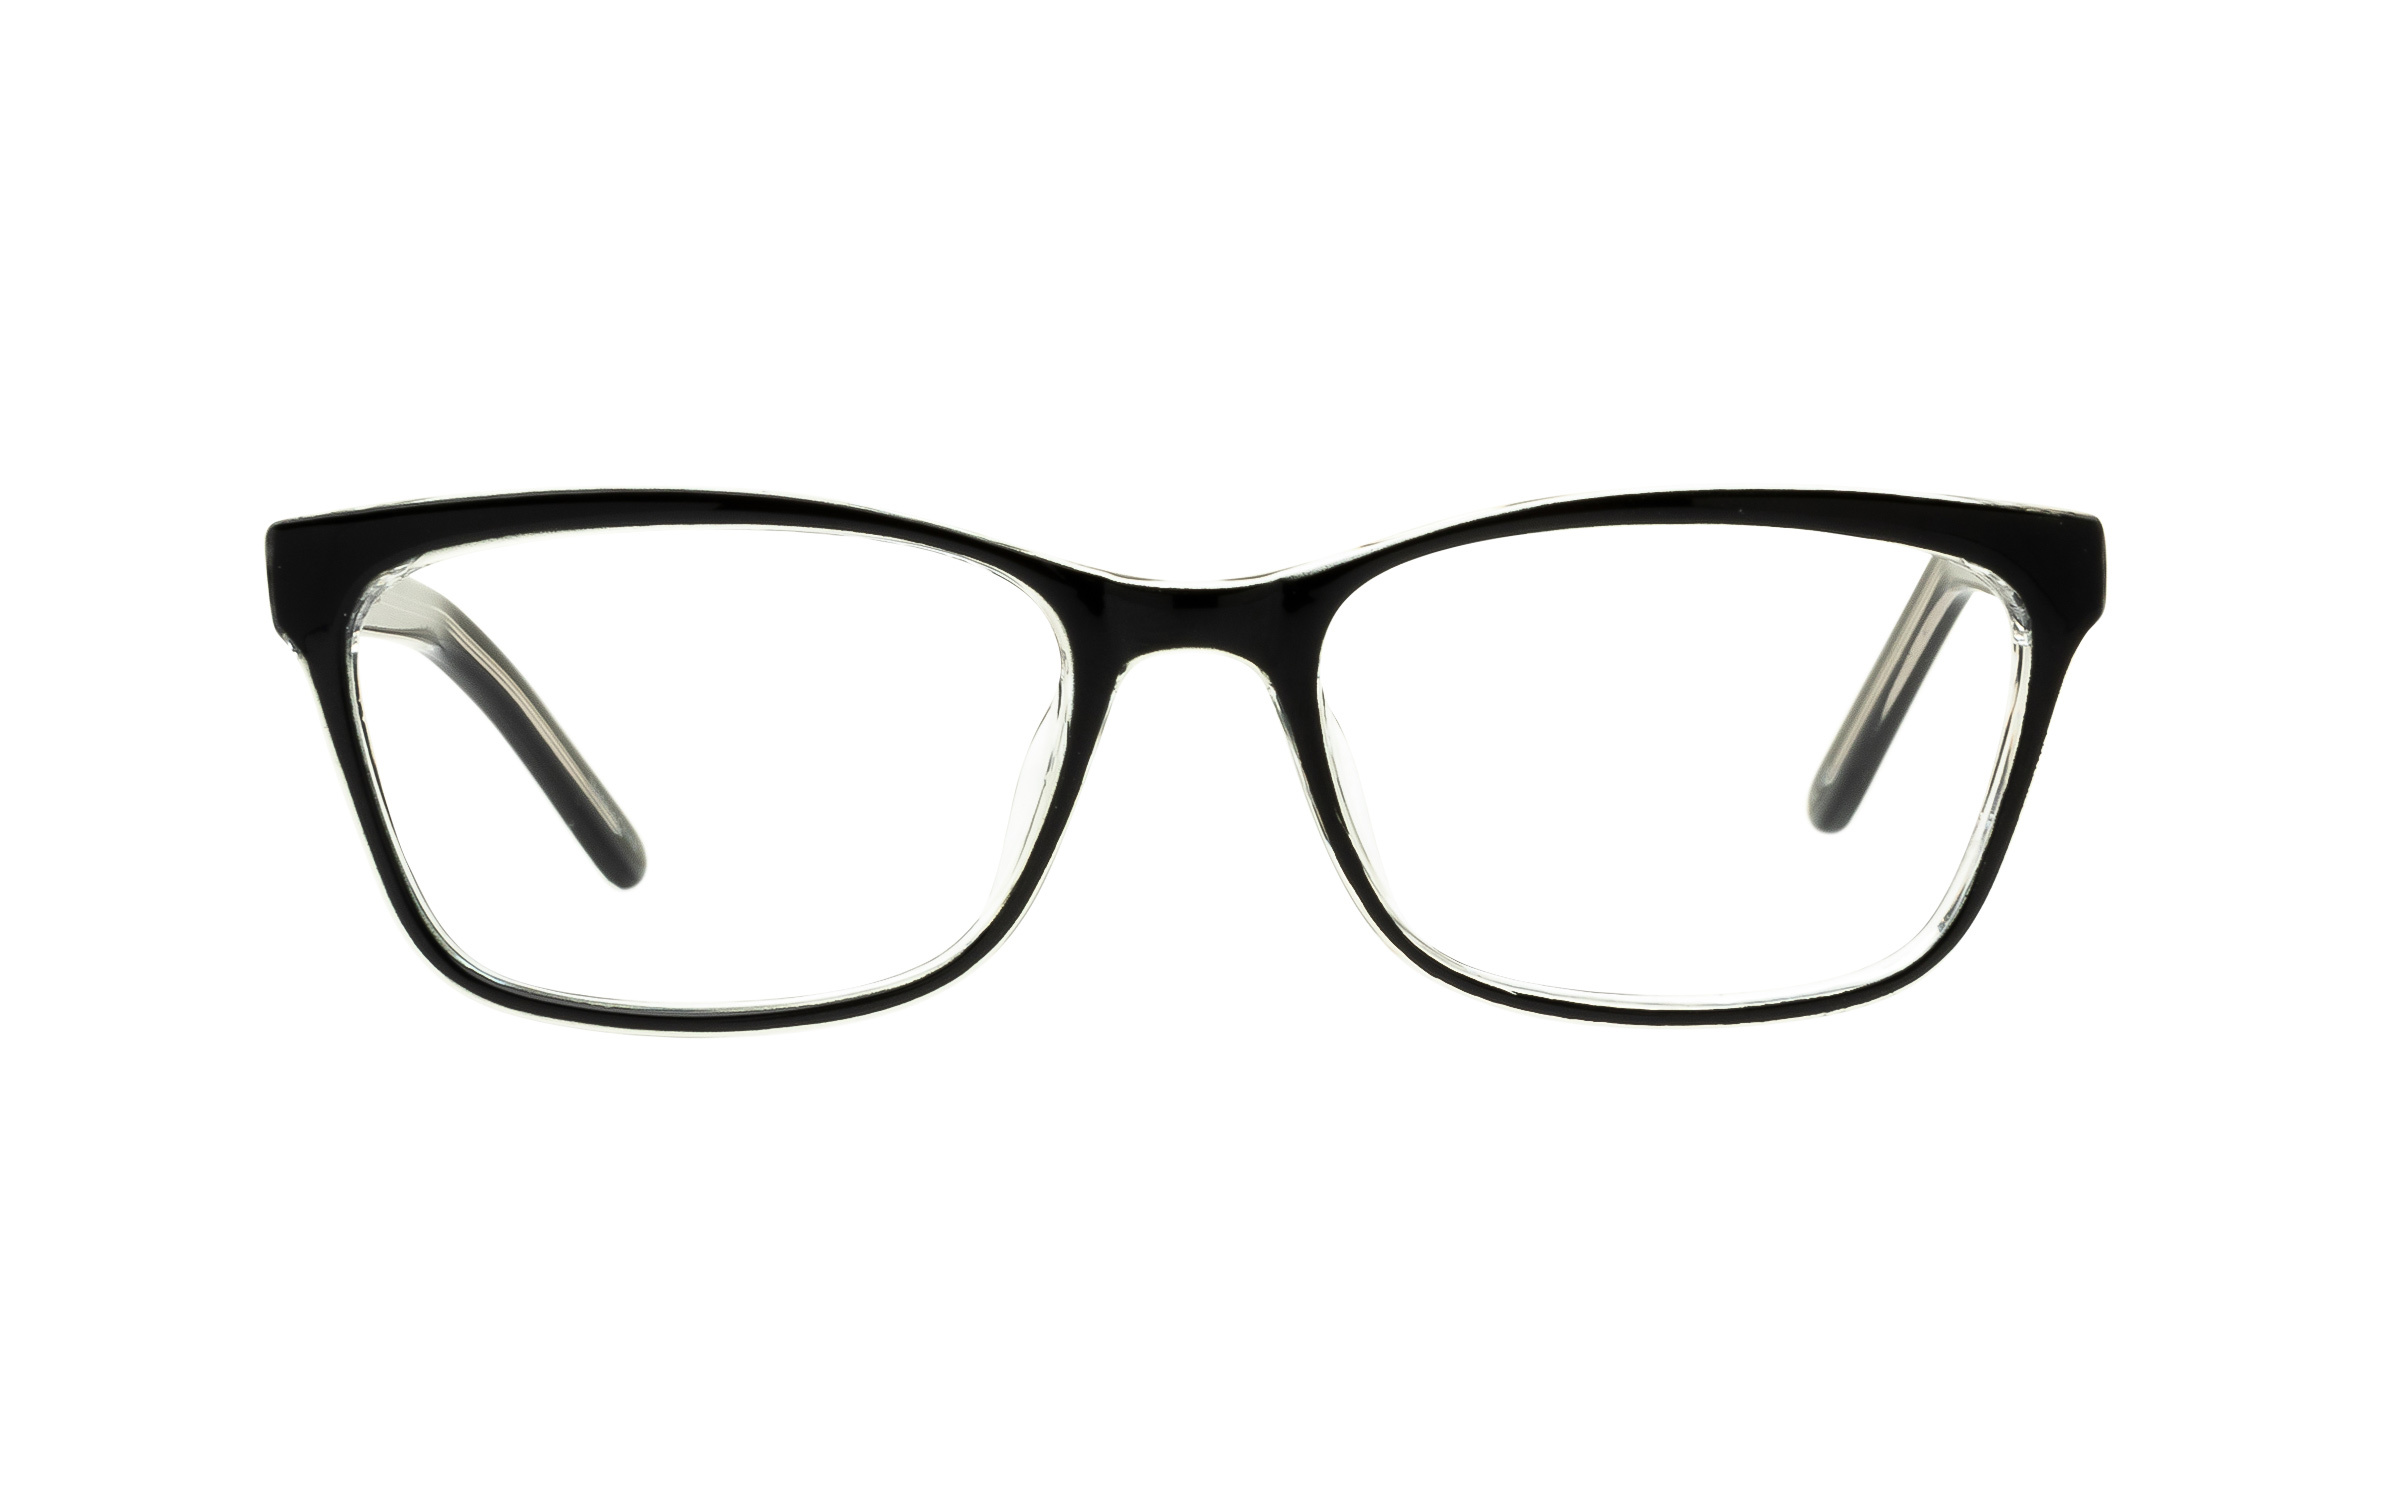 ClearlyBasics Clearly Junior Tumbler KID012 C03 (49) Eyeglasses and Frame in Black - Online